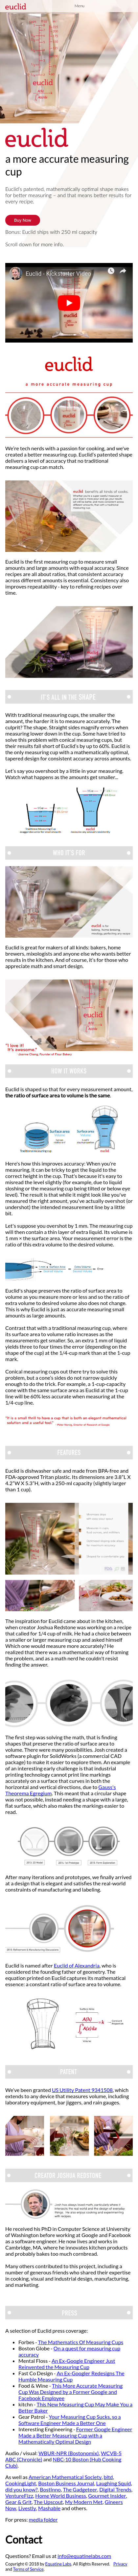 Example of Design for Science, Mobile Landing Page by euclidmeasuring.com | Mobile Landing Page Design